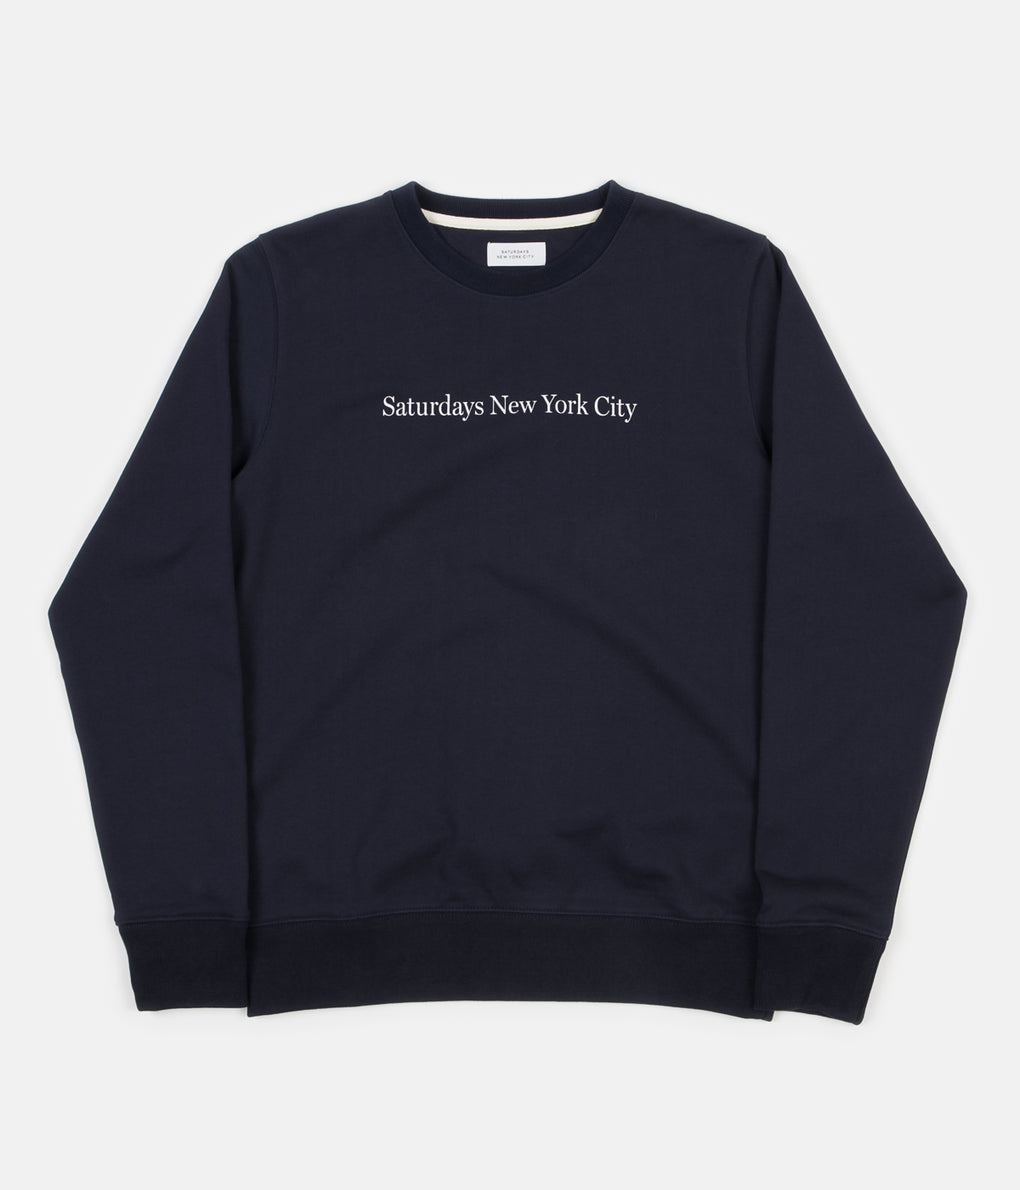 Saturdays NYC Bowery Crewneck Sweatshirt - Midnight